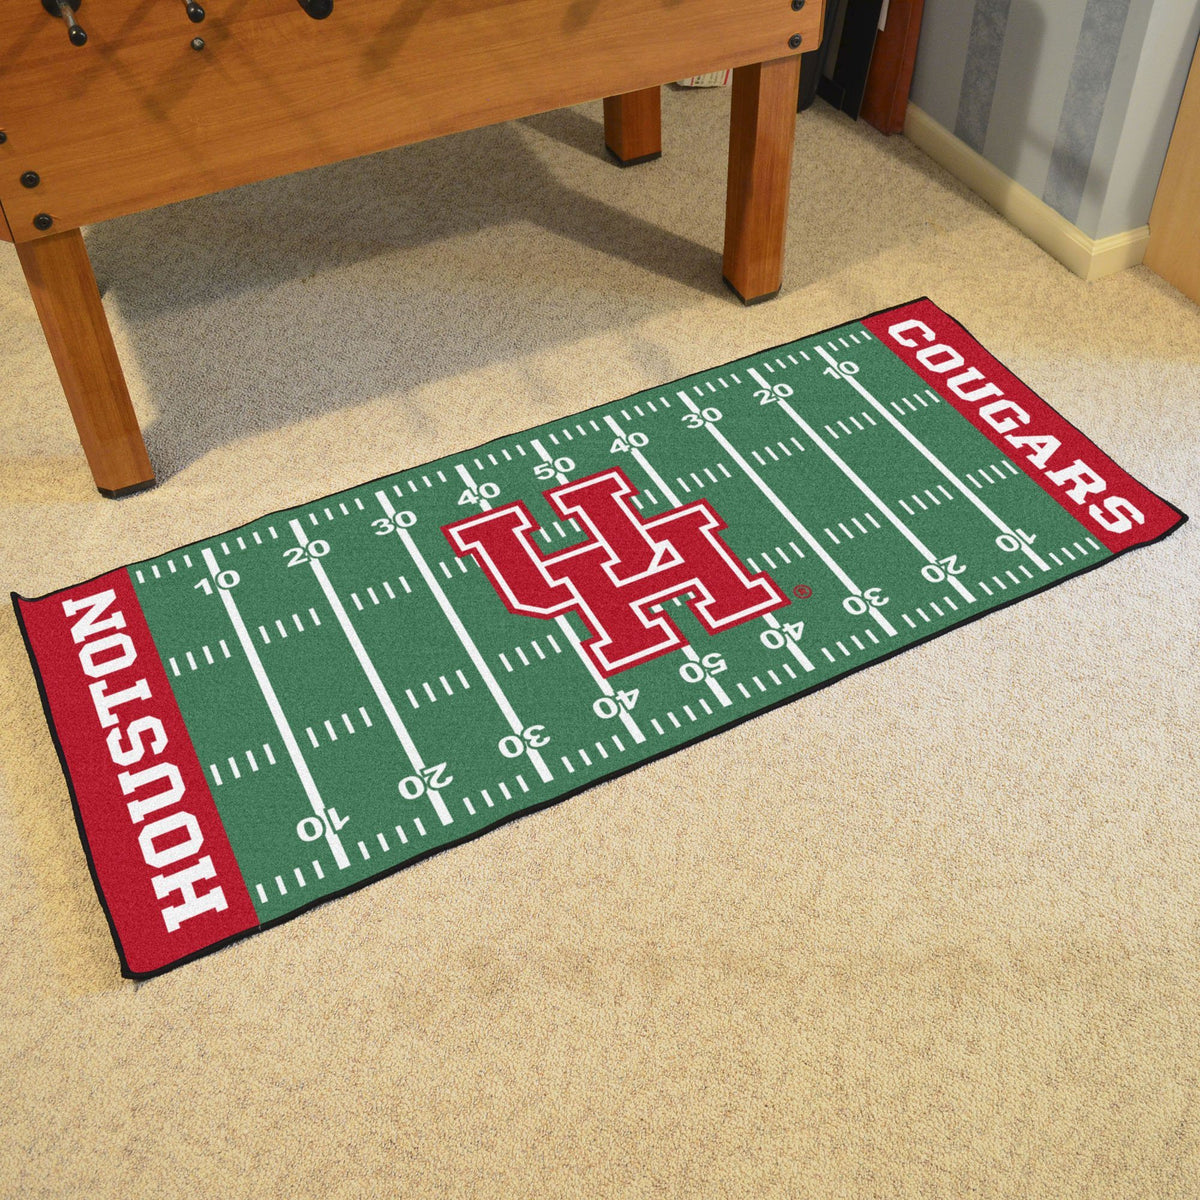 Collegiate - Football Field Runner Collegiate Mats, Rectangular Mats, Football Field Runner, Collegiate, Home Fan Mats Houston